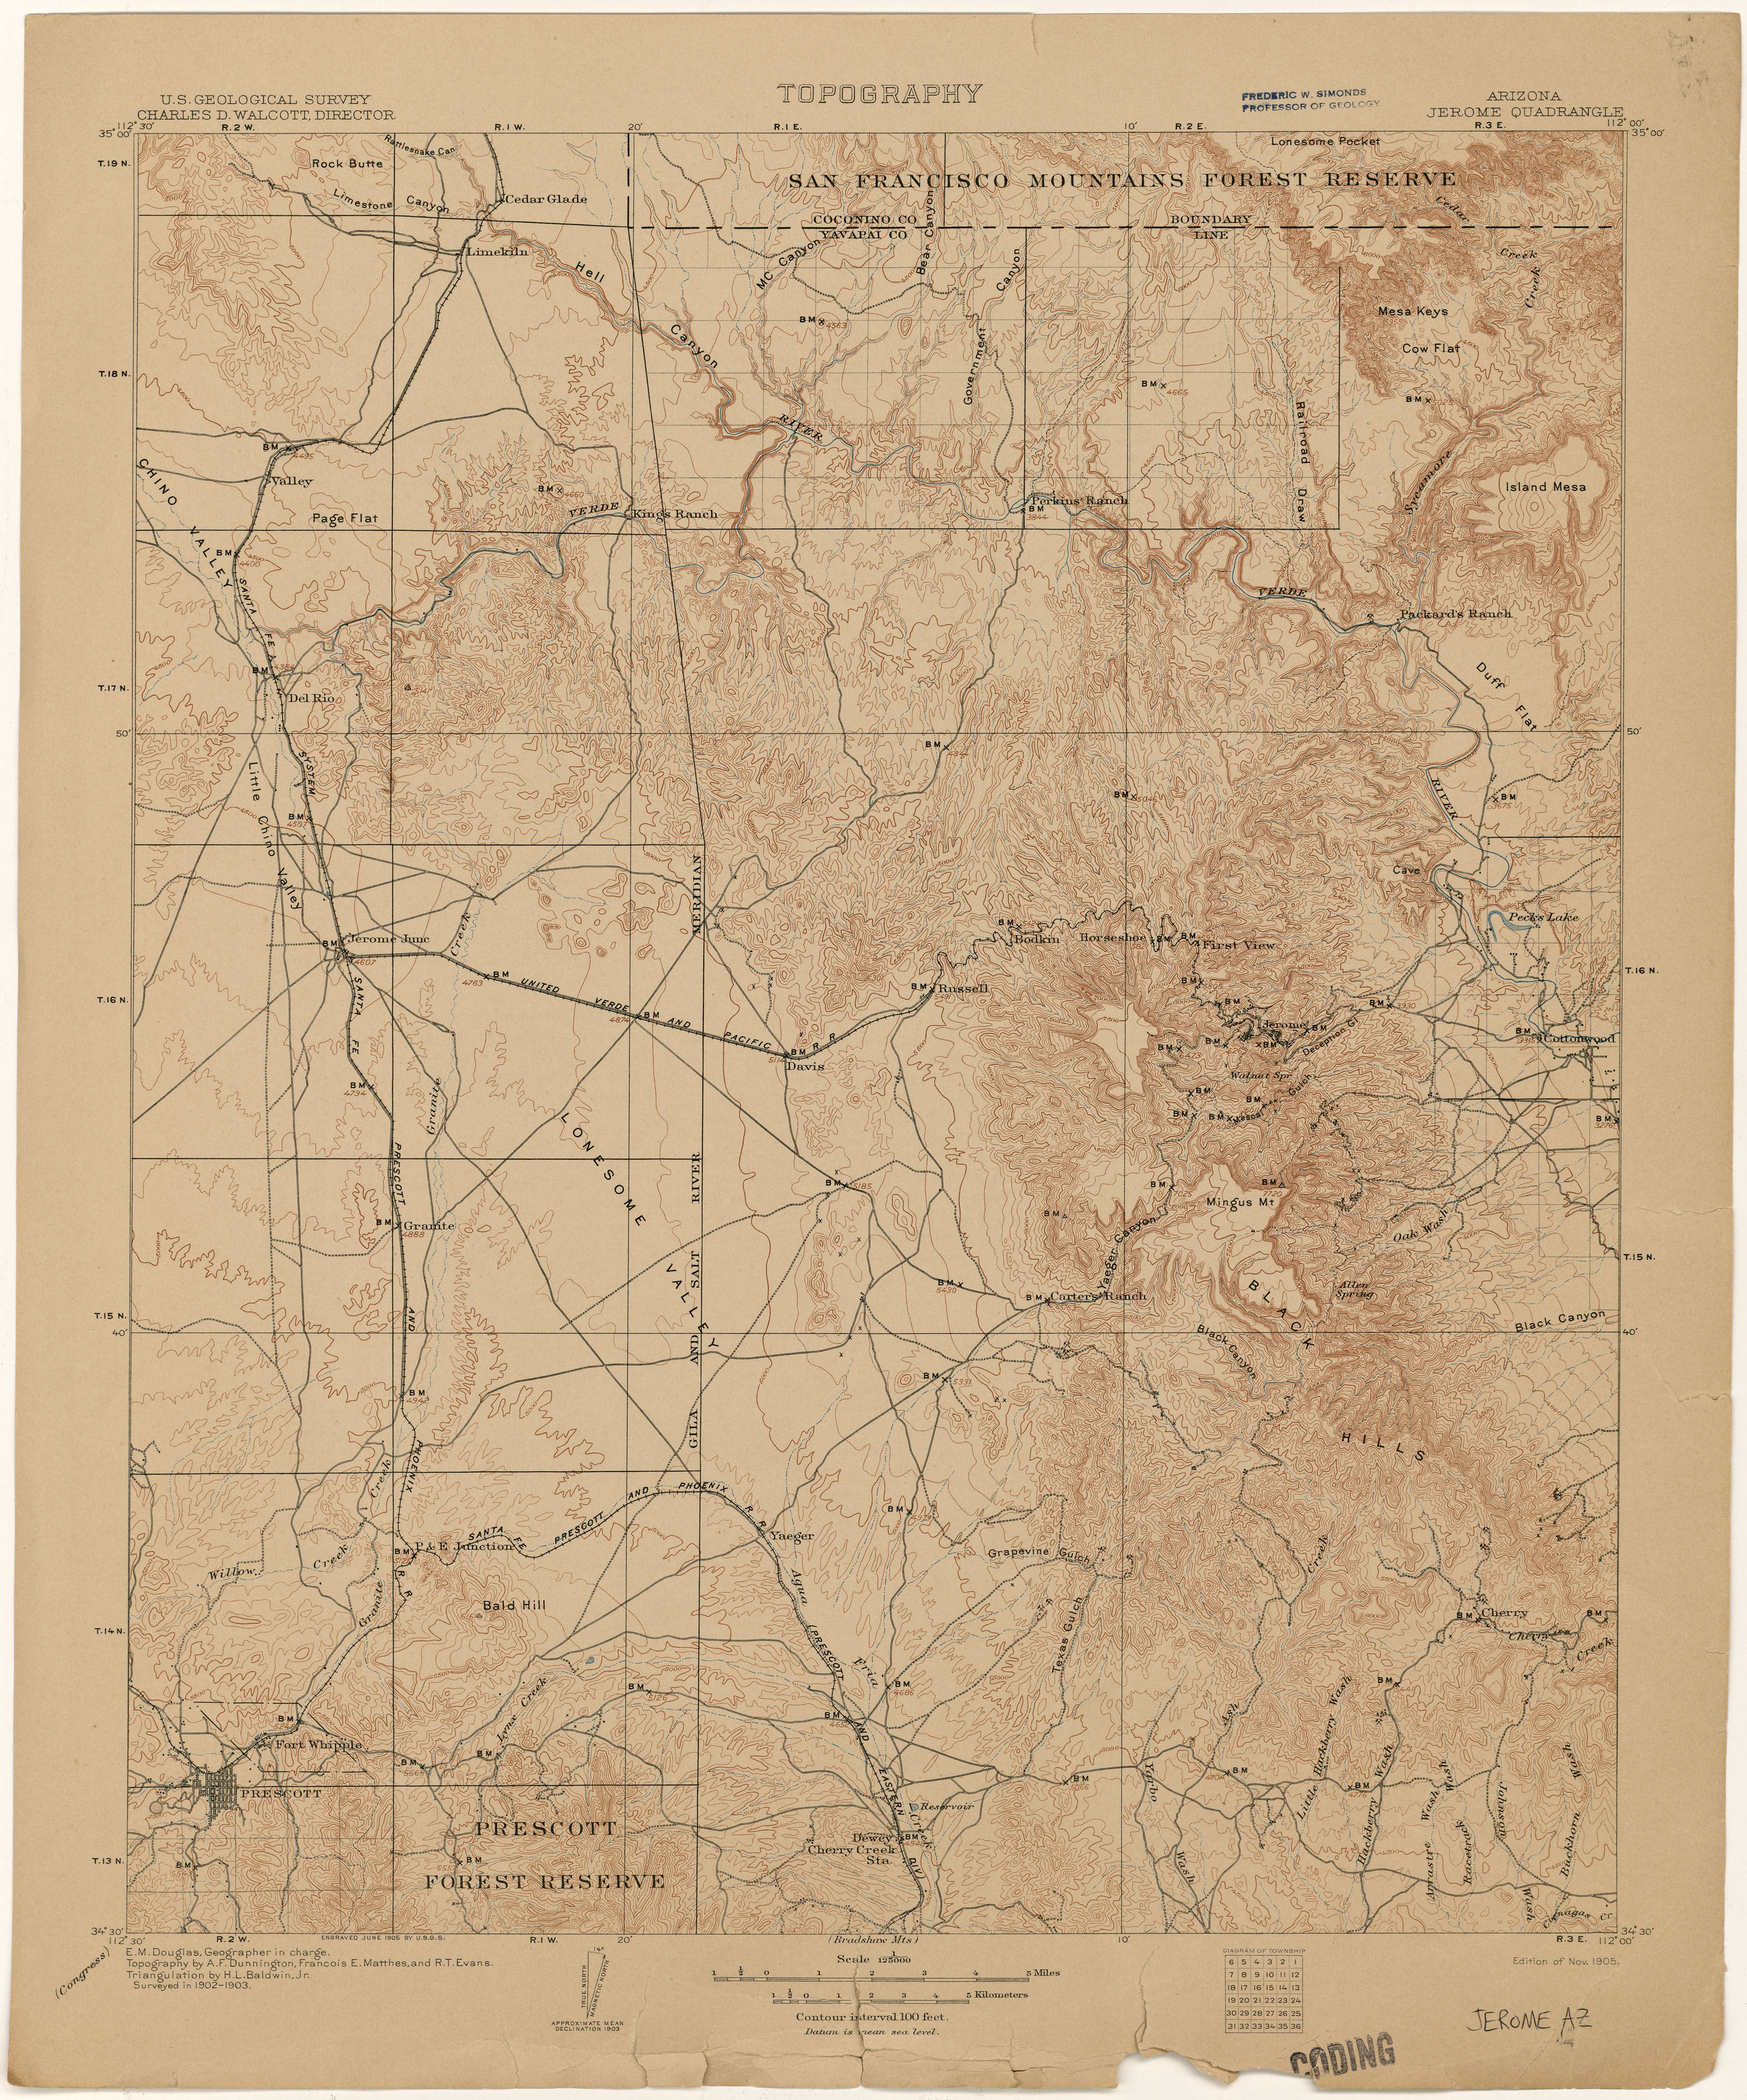 Map Of Arizona Including Jerome.Arizona Historical Topographic Maps Perry Castaneda Map Collection